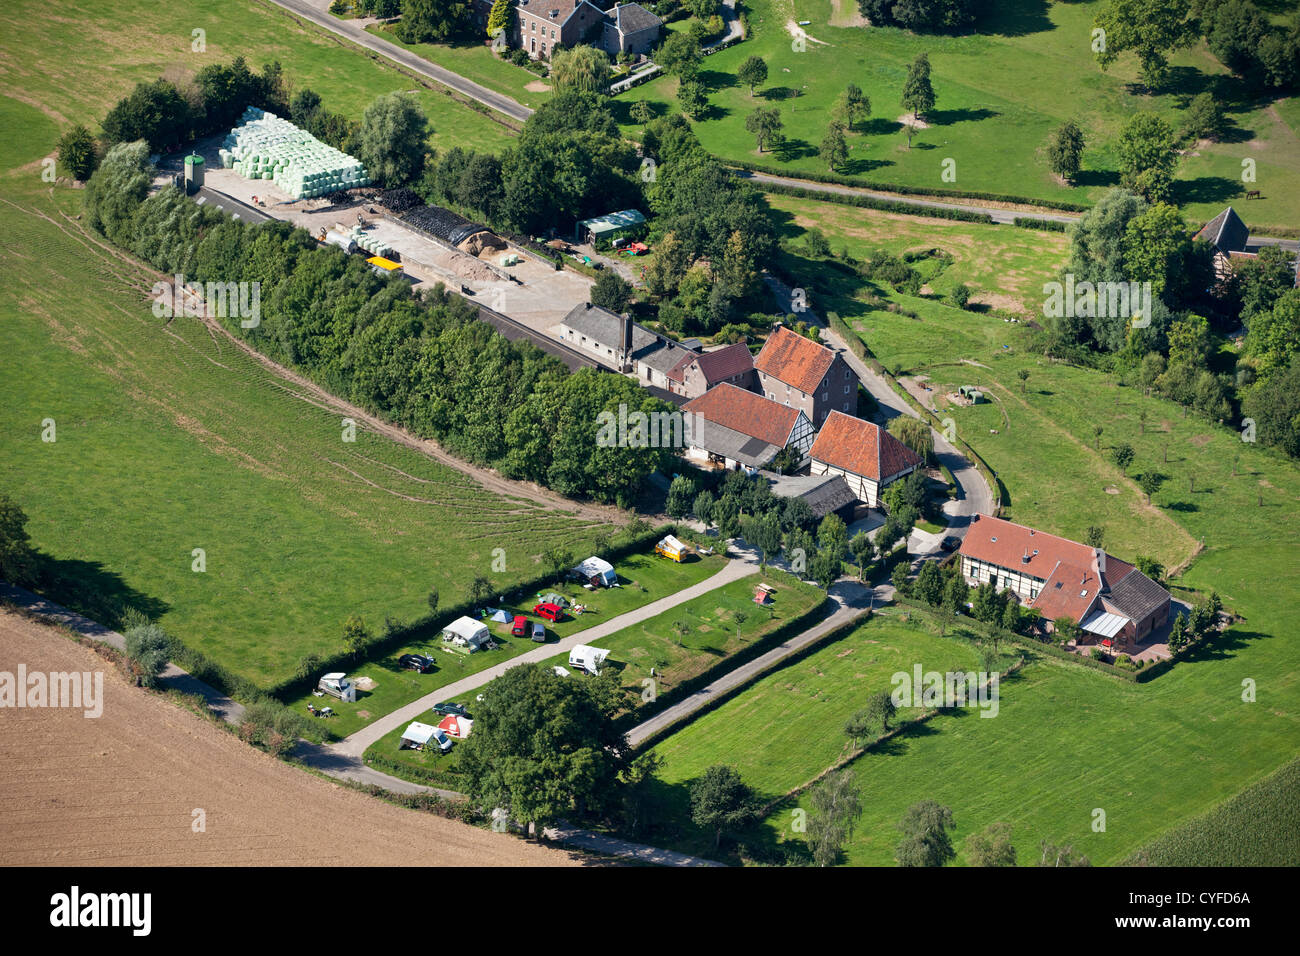 The Netherlands, Epen, Half timbered farmhouses, also campsite. Aerial. - Stock Image